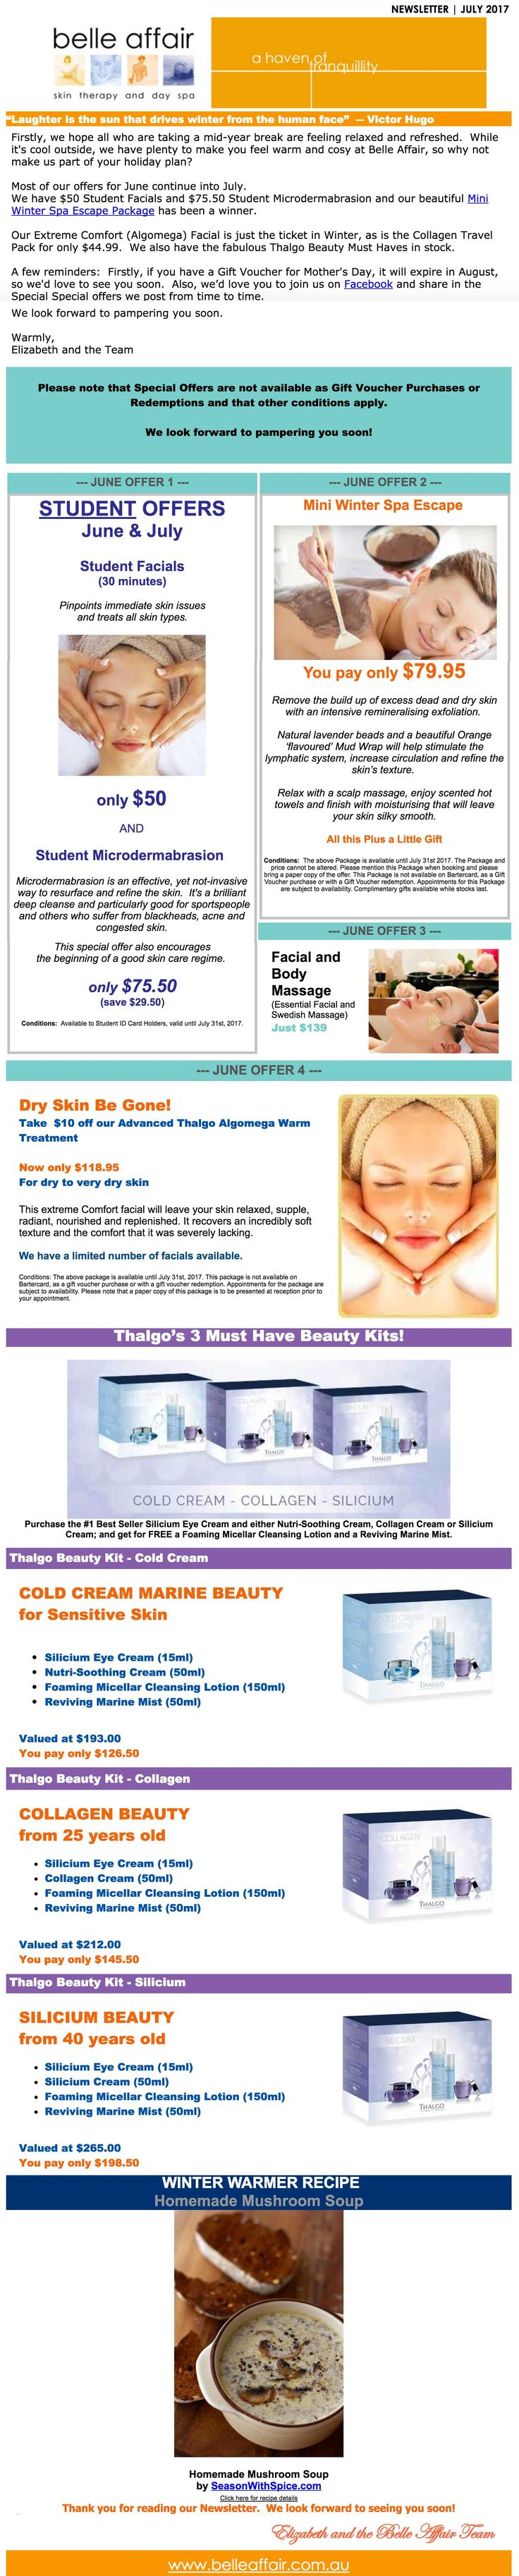 Belle Affair Skin Therapy and Day Spa - July Specials. belleaffair.com.au/special-offers/